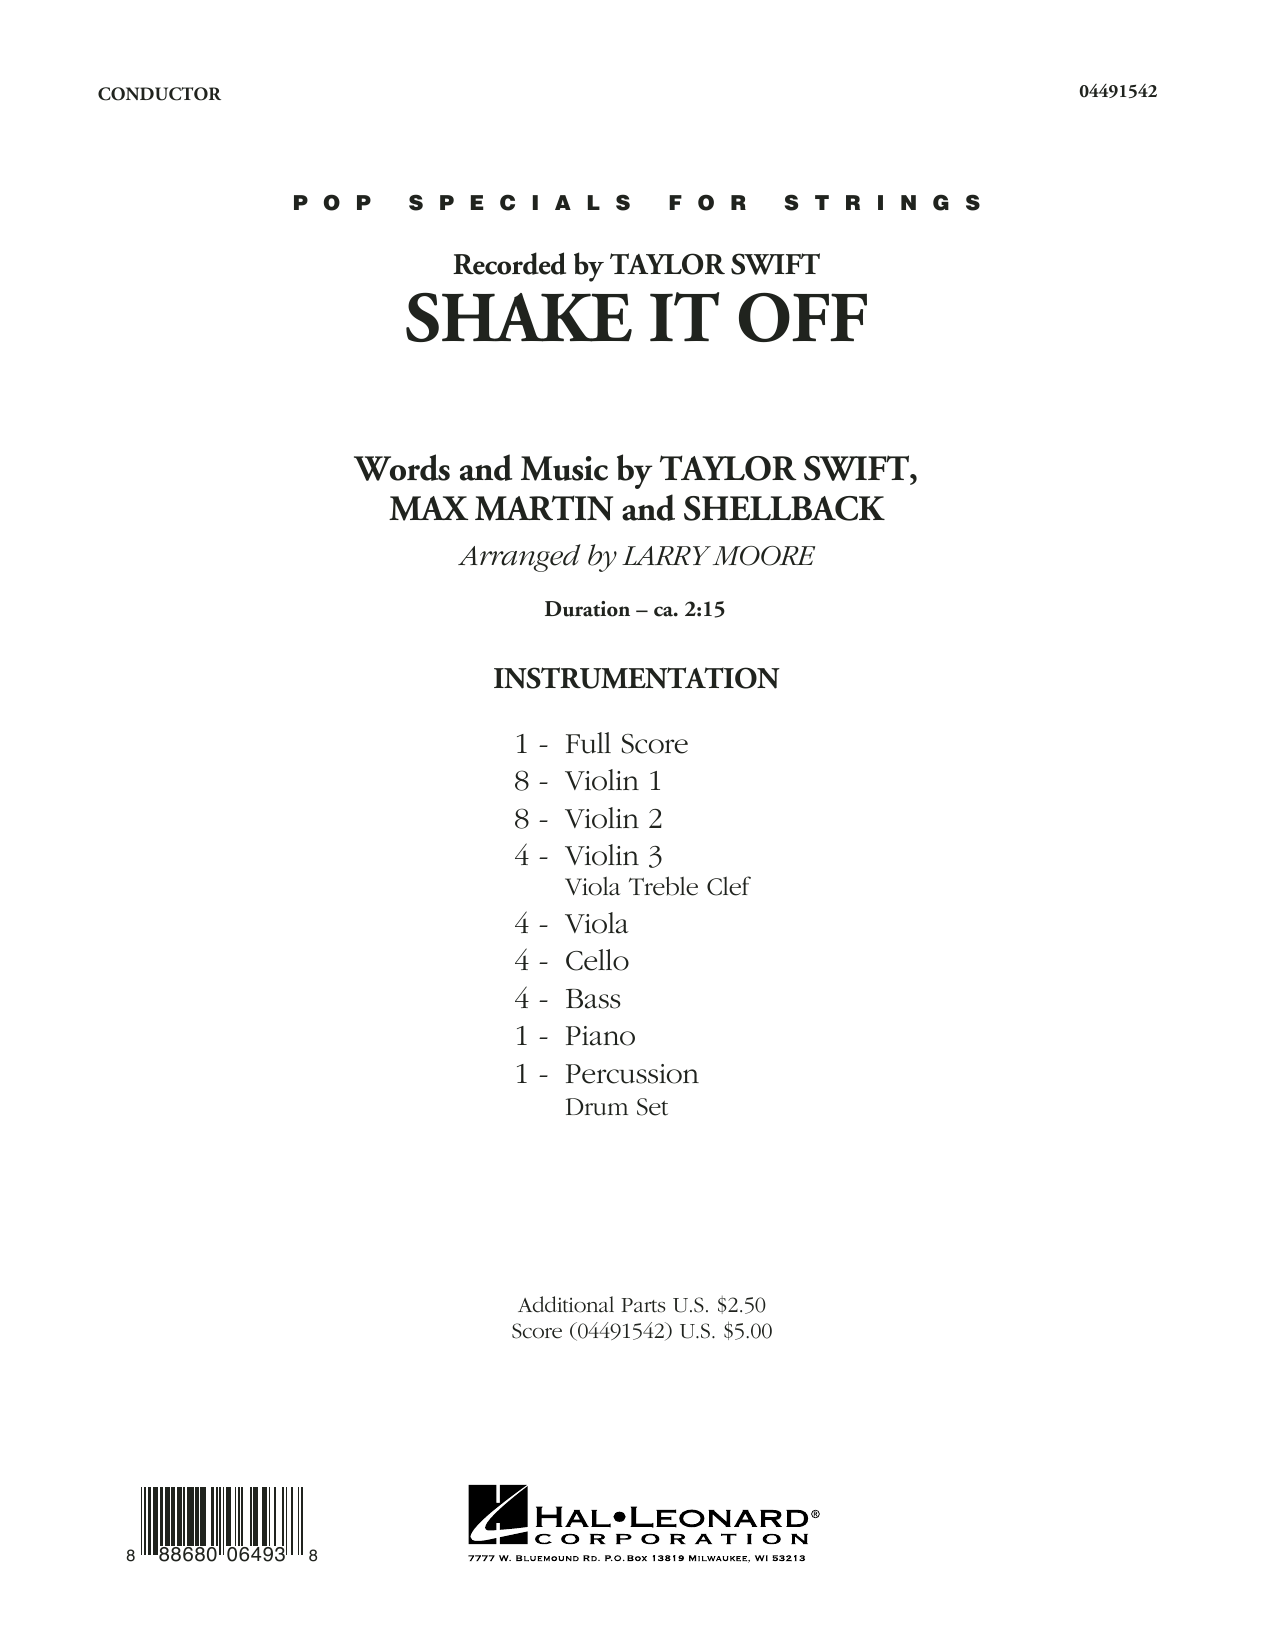 Shake It Off (COMPLETE) sheet music for orchestra by Larry Moore, Johan Schuster, Max Martin, Shellback and Taylor Swift. Score Image Preview.